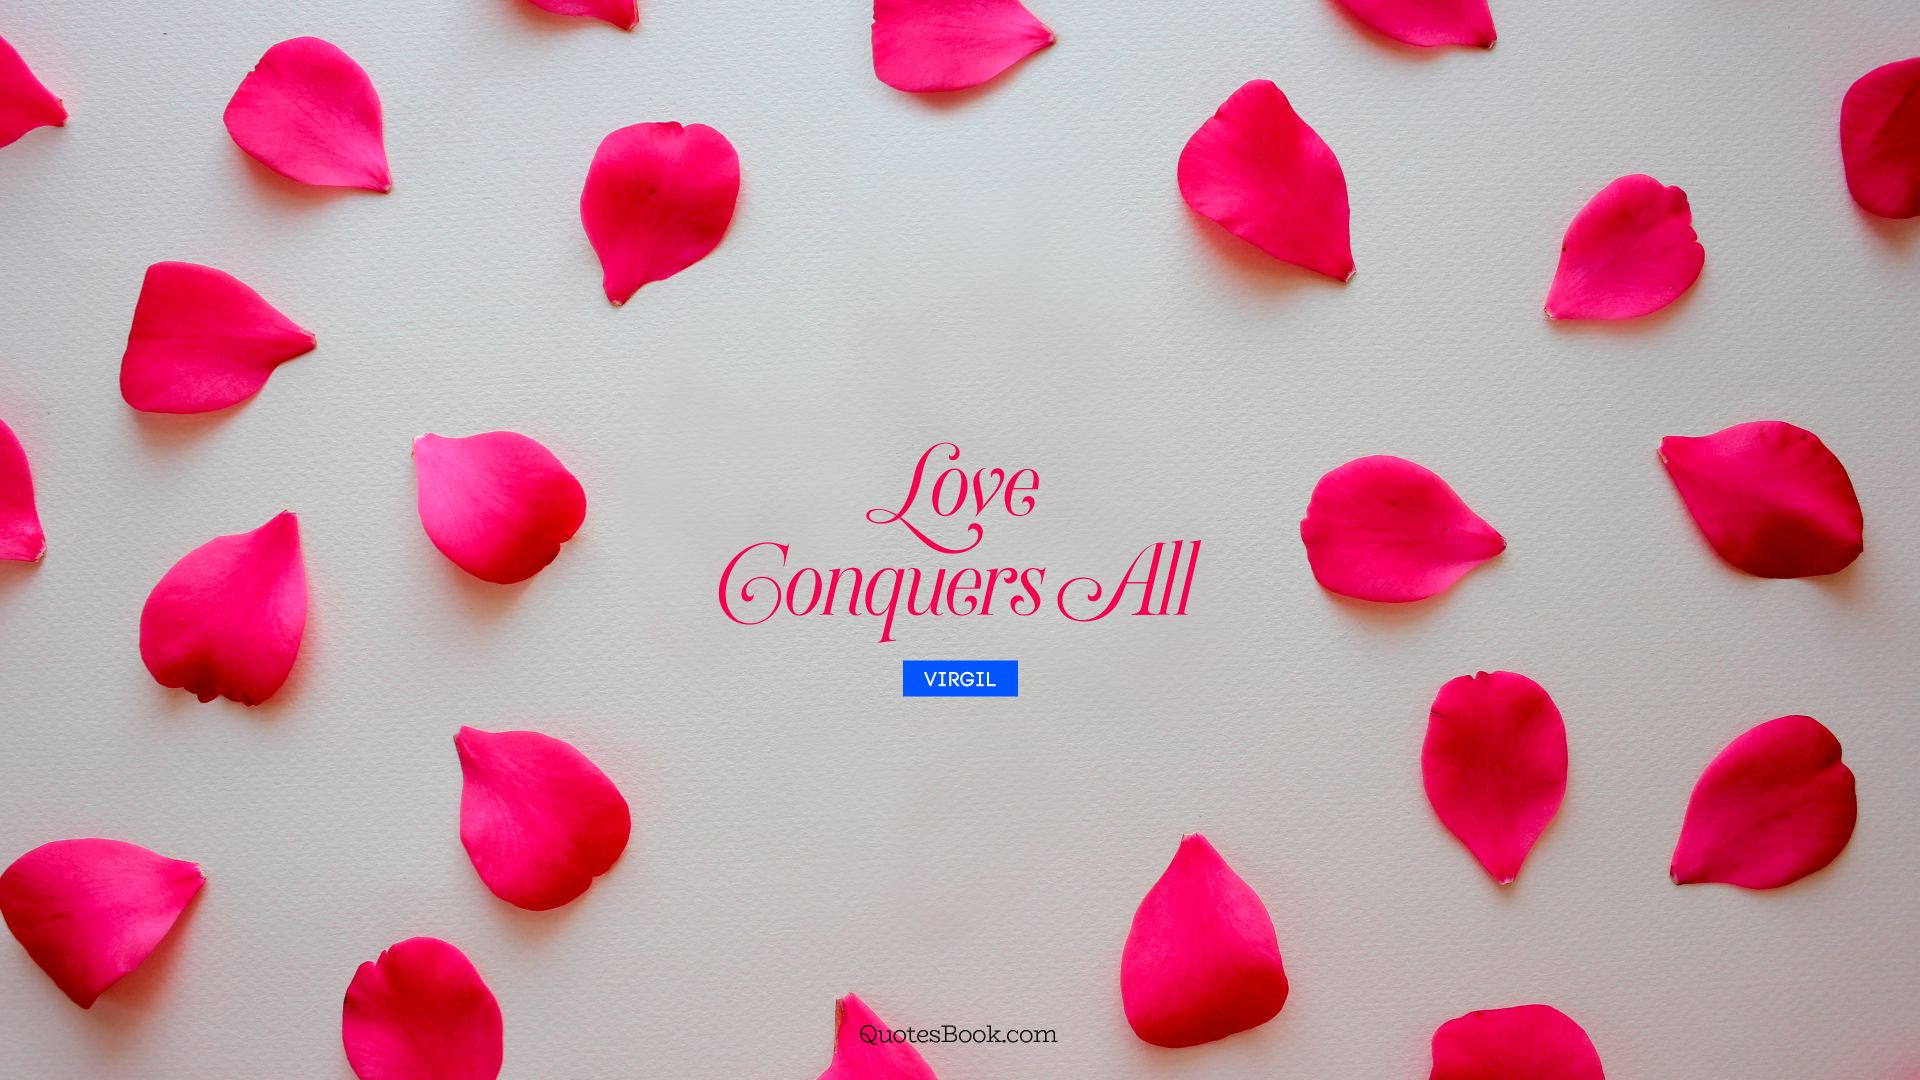 Love conquers all. - Quote by Virgil